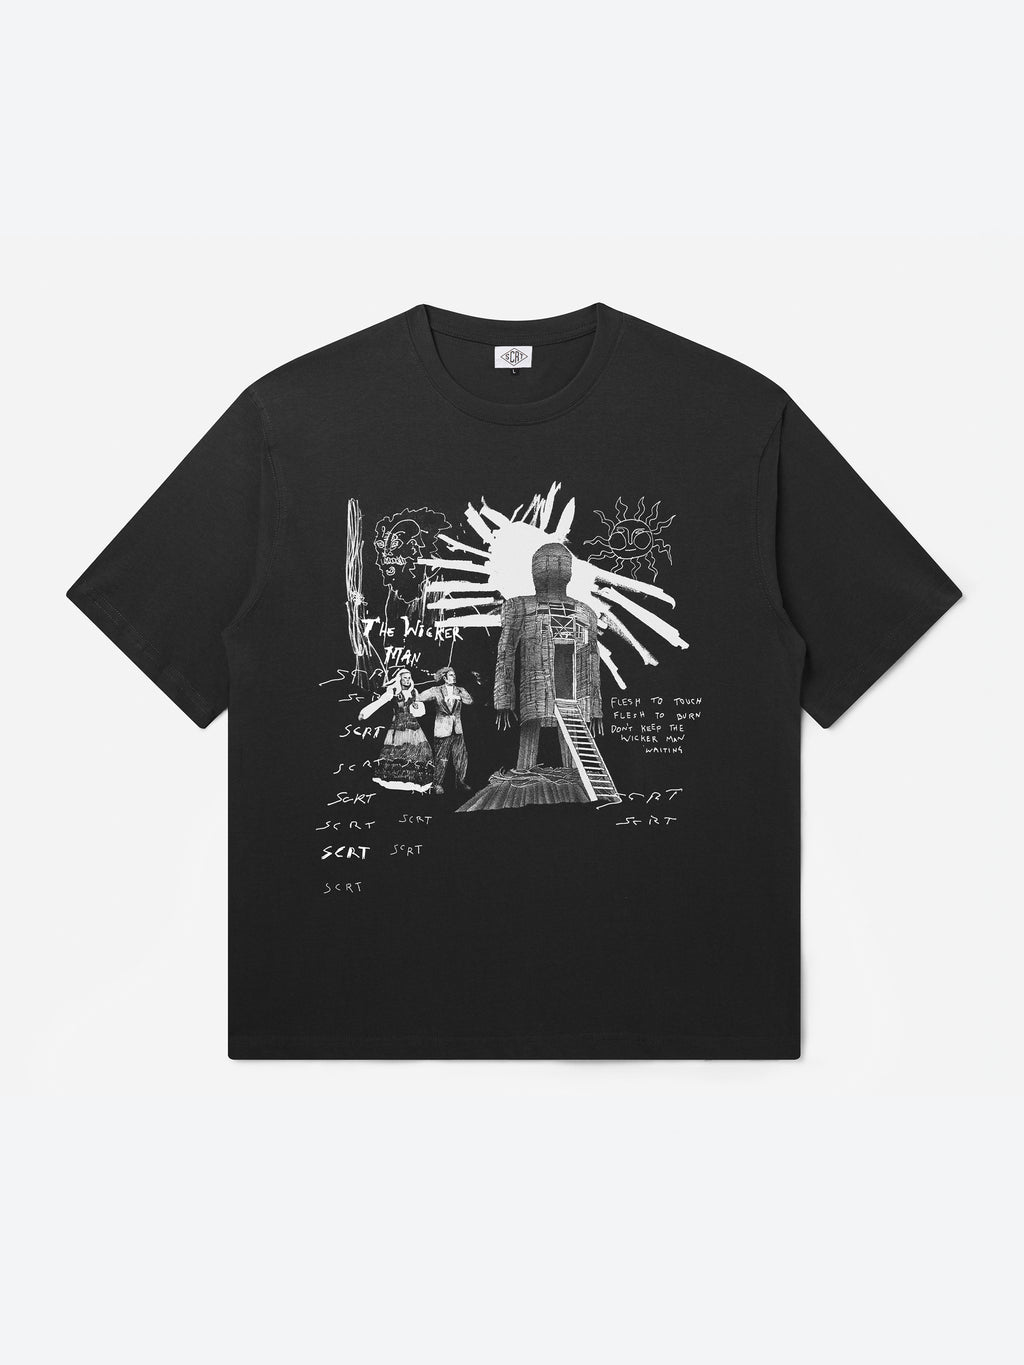 Wicker Man T-Shirt - Black